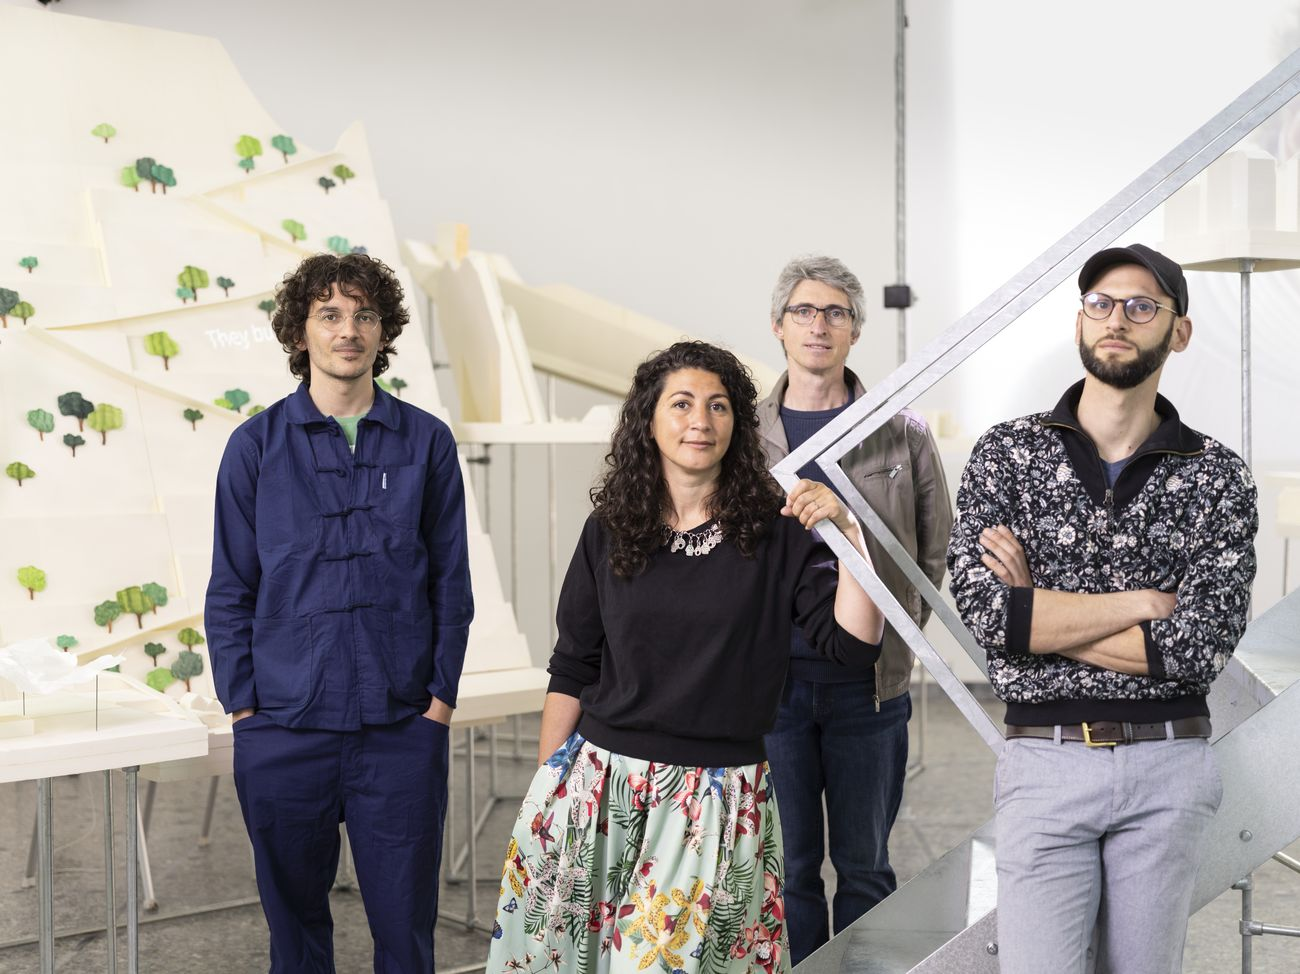 Project team for the Swiss Pavilion at the 17th International Architecture Exhibition - La Biennale di Venezia, May 2021. Left to right, Mounir Ayoub, Vanessa Lacaille, Fabrice Aragno and Pierre Szczepski. Photo Keystone - Gaëtan Bally